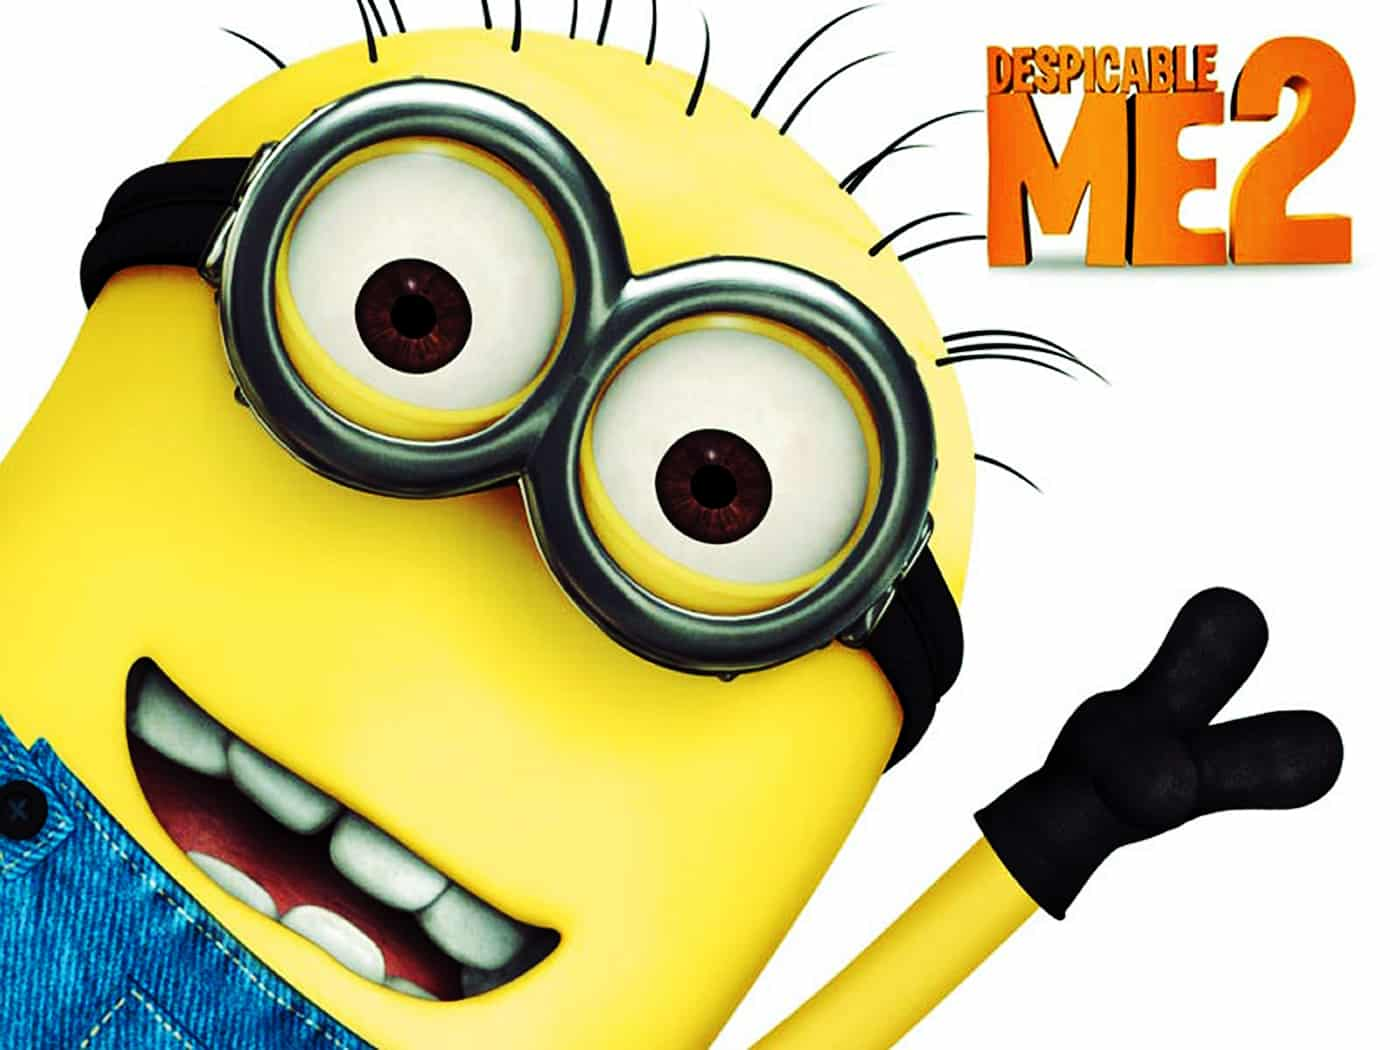 Fandango wants to send your family to see Despicable Me 2